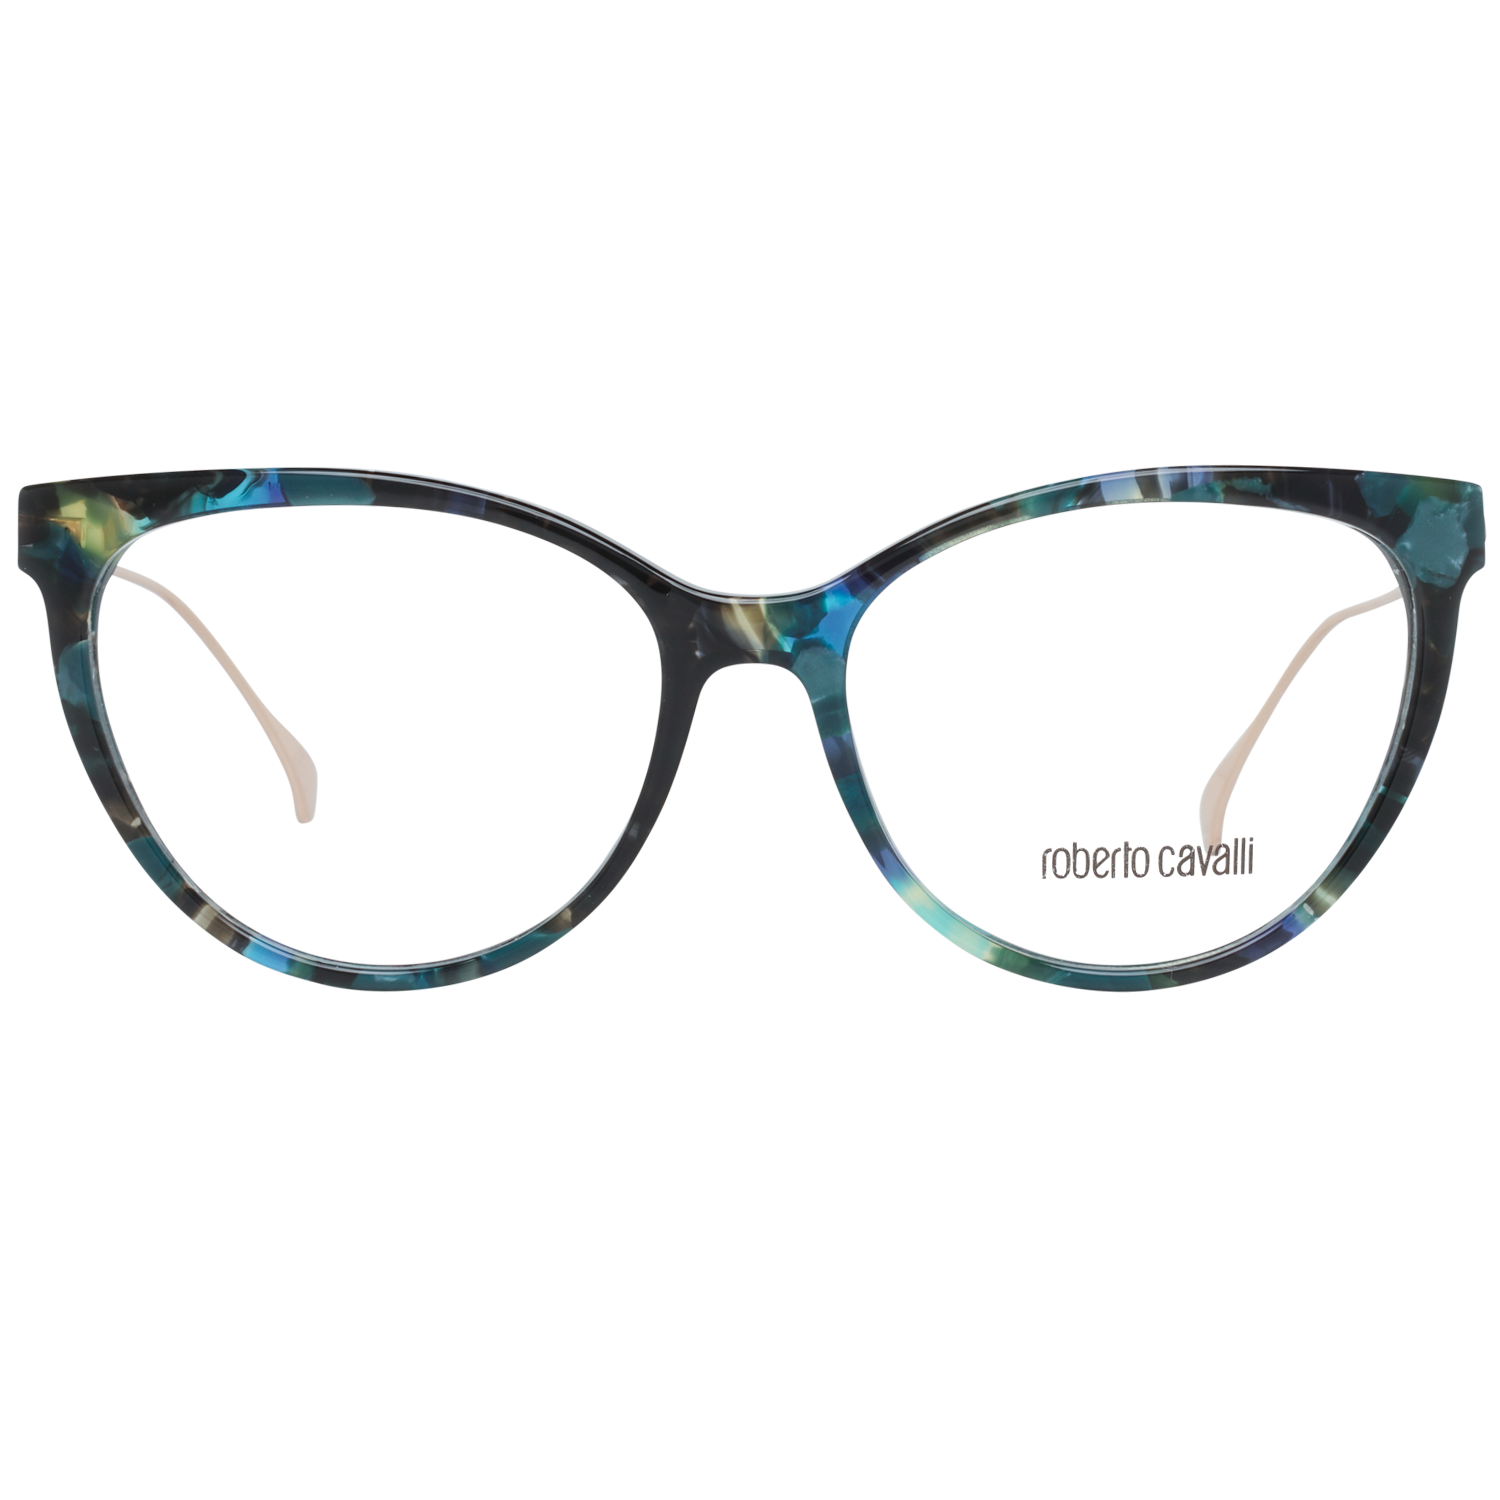 Roberto Cavalli Optical Frame RC5115 055 54 Women Multicolor